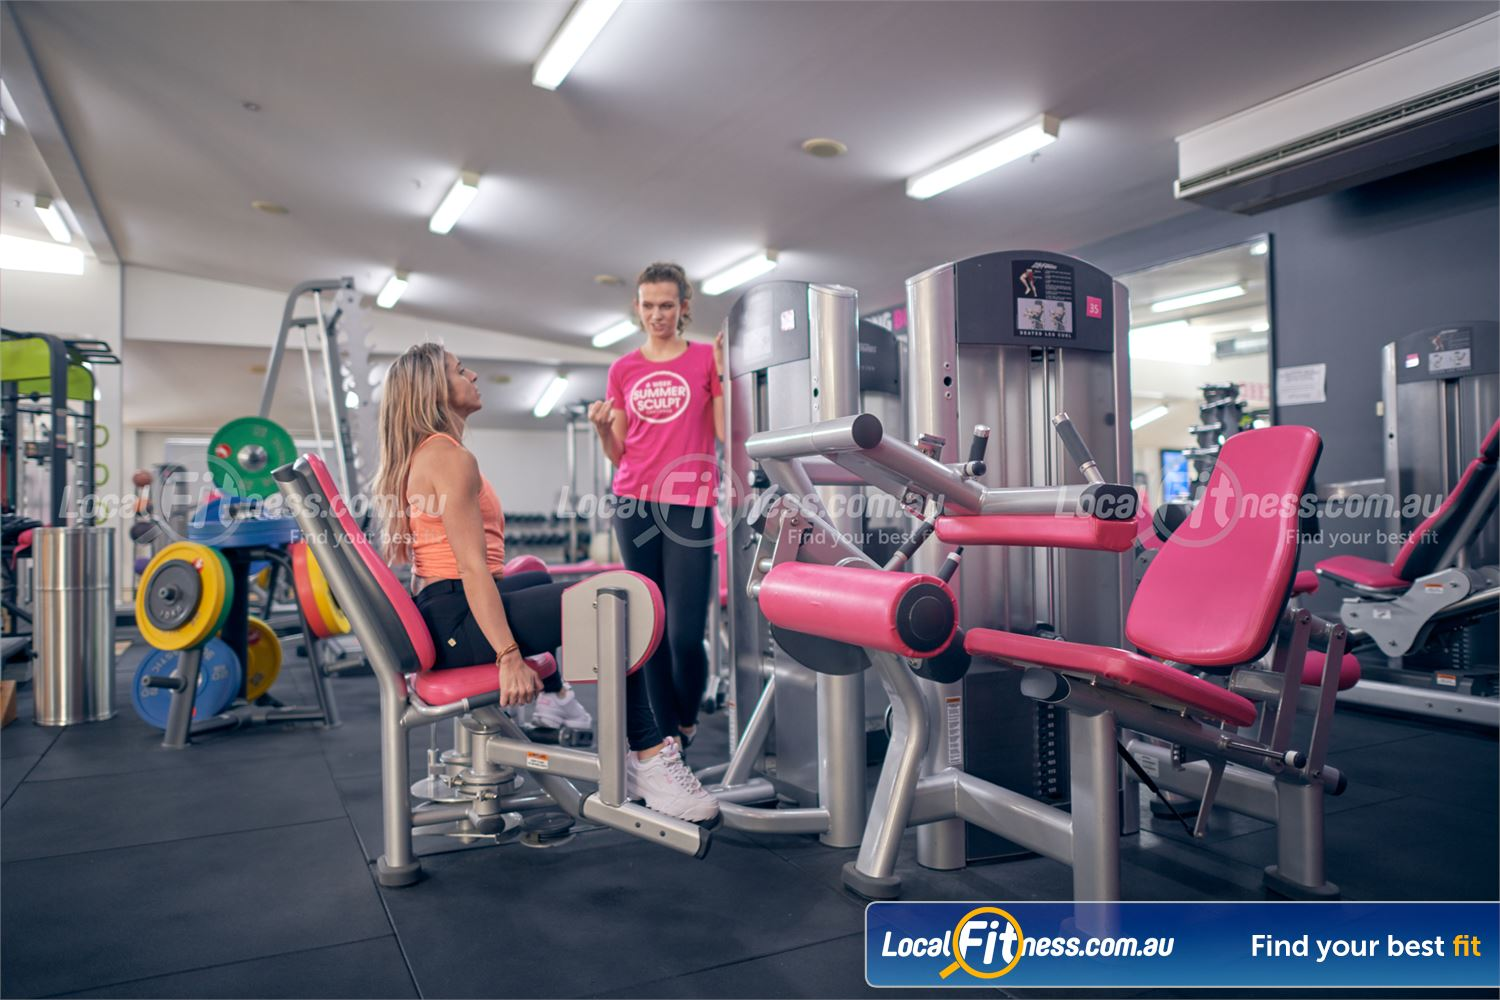 Fernwood Fitness Near Canterbury Our 24 hour Fernwood gym includes state of the art pin-loading machines catered for women.